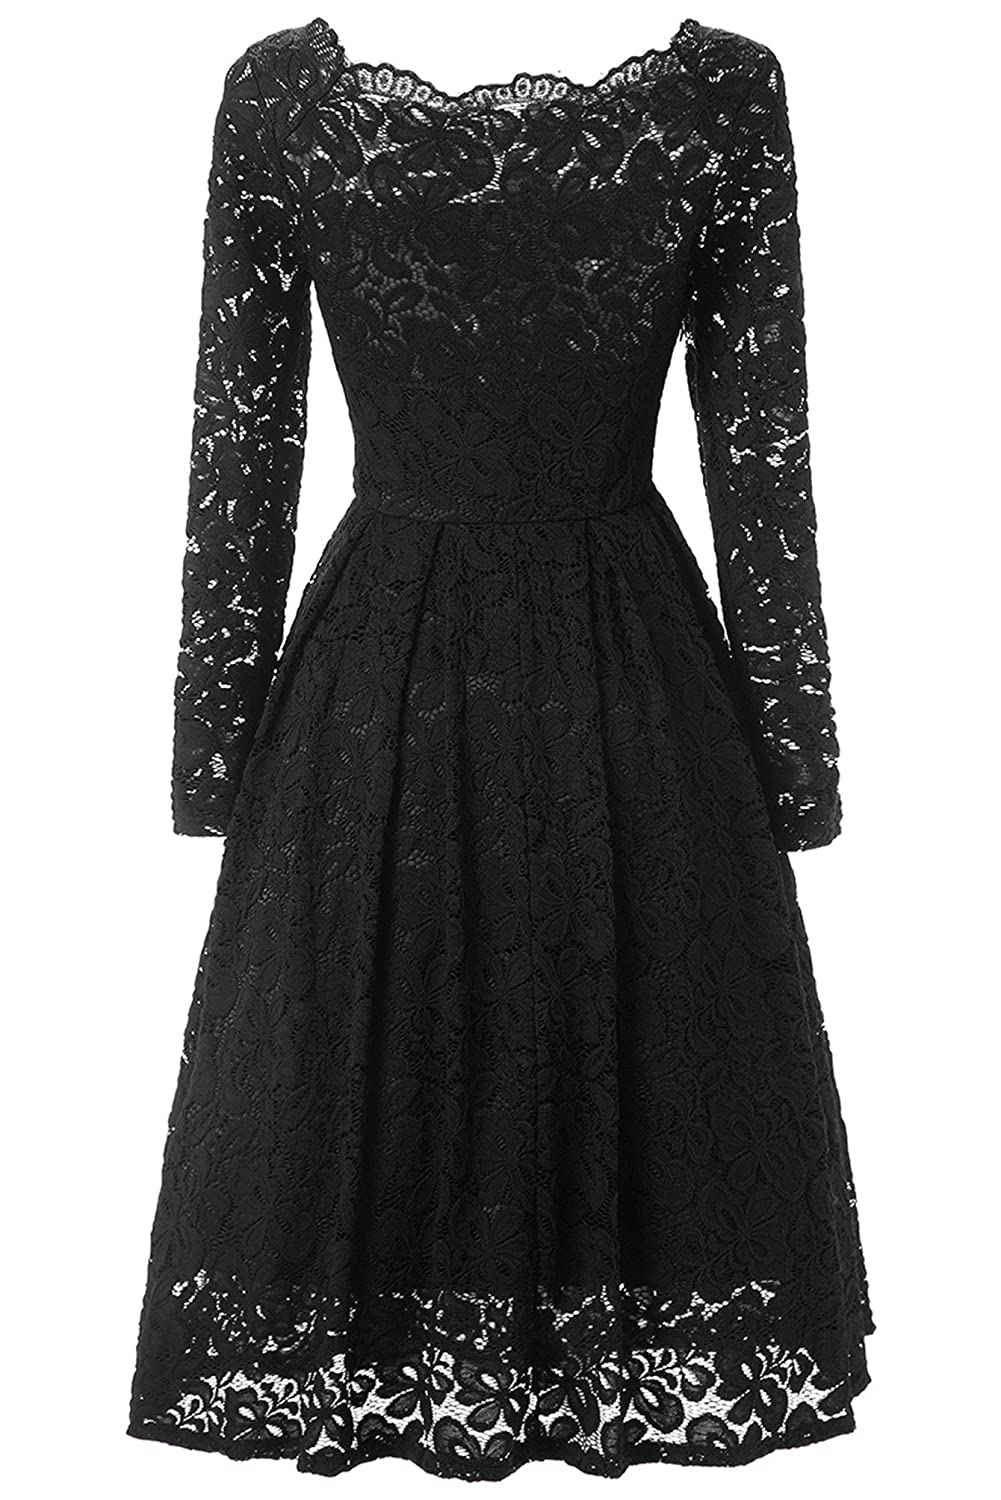 JH DRESS Short Lace Prom Retro Cocktail Dresses Long Sleeves Cheap Wedding Dresses for Women 50s Vintage Floral at Amazon Womens Clothing store: